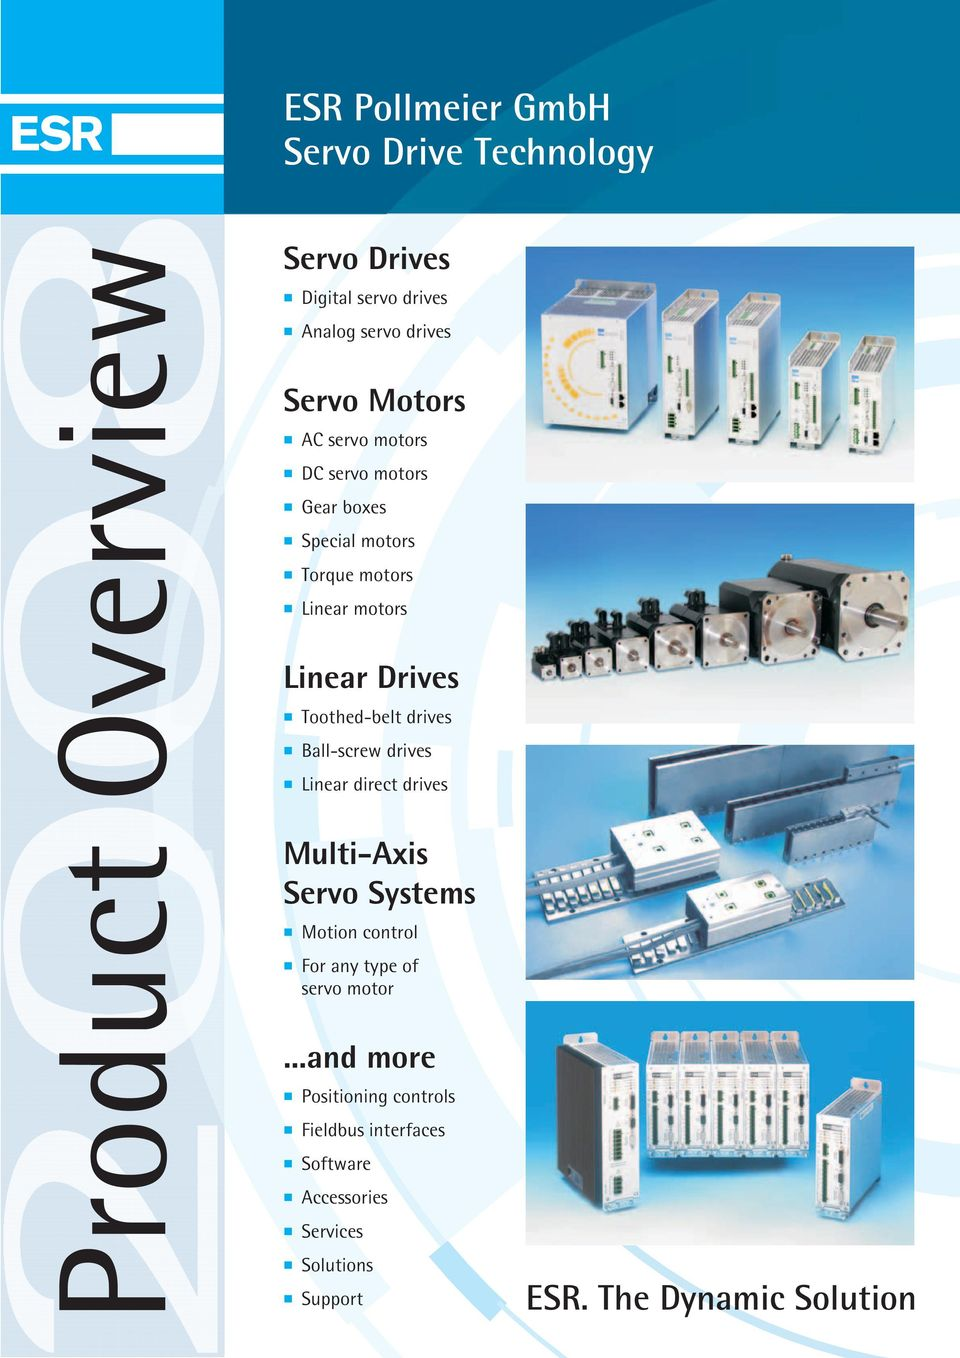 Product Overview Esr Pollmeier Gmbh Servo Drive Technology Esr